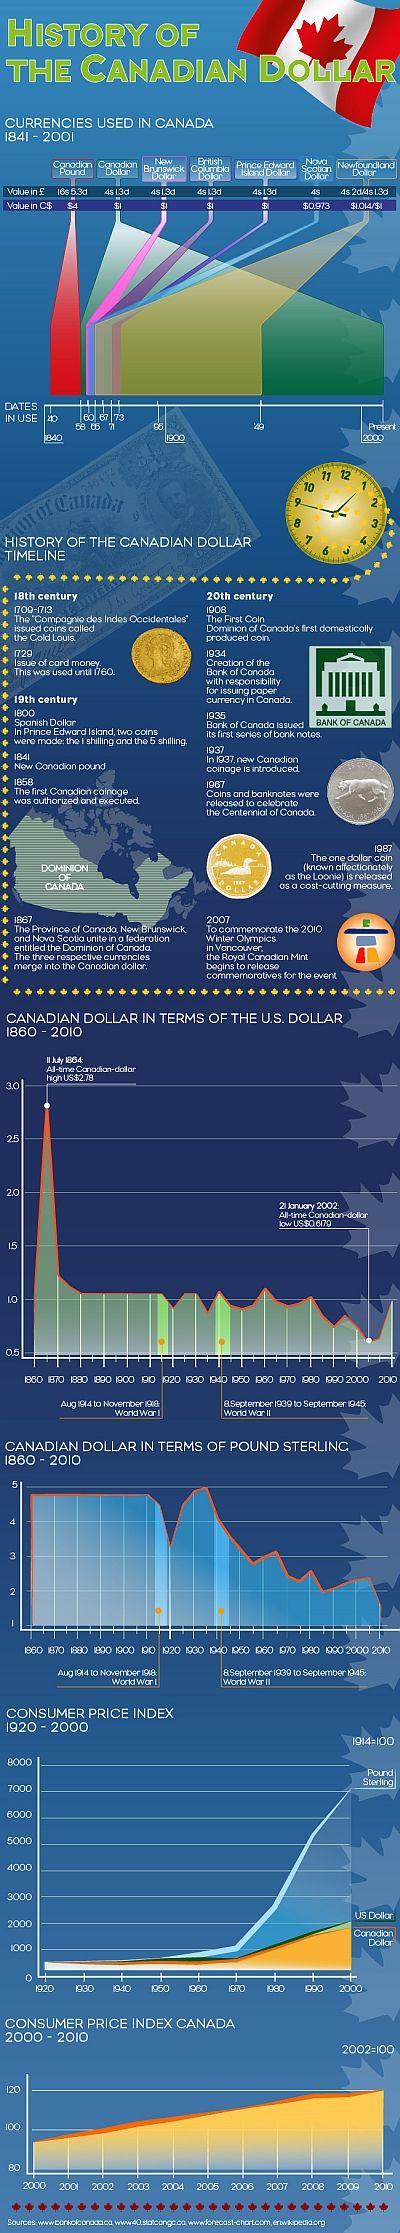 History of the Canadian Dollar - http://canadianfinanceblog.com/history-of-the-canadian-dollar/